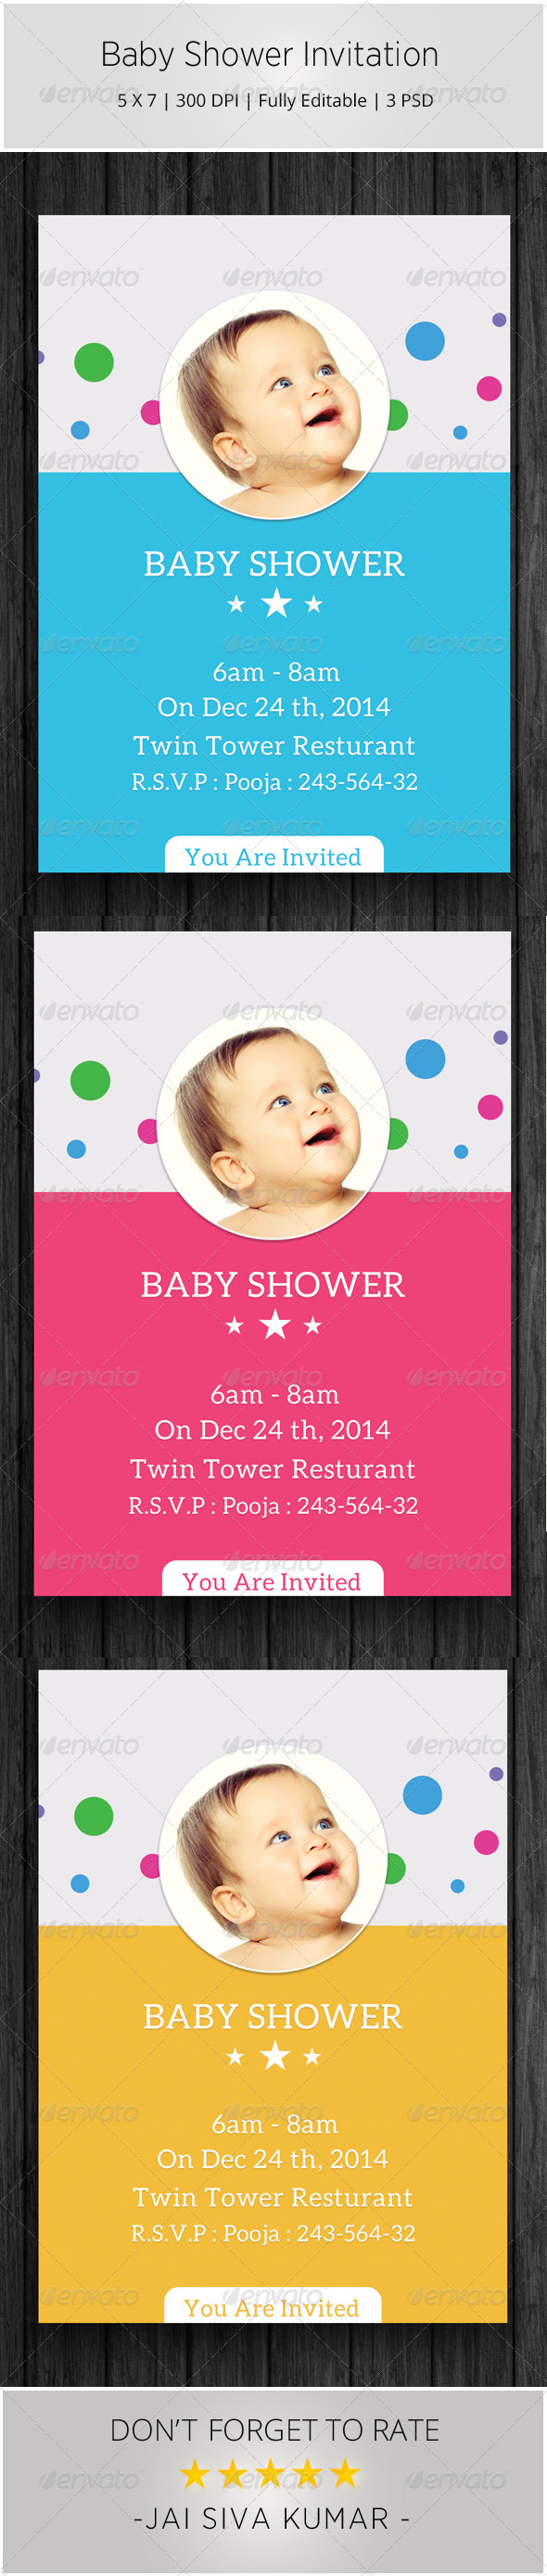 Baby Shower Invitation Templates - Invitations Cards & Invites